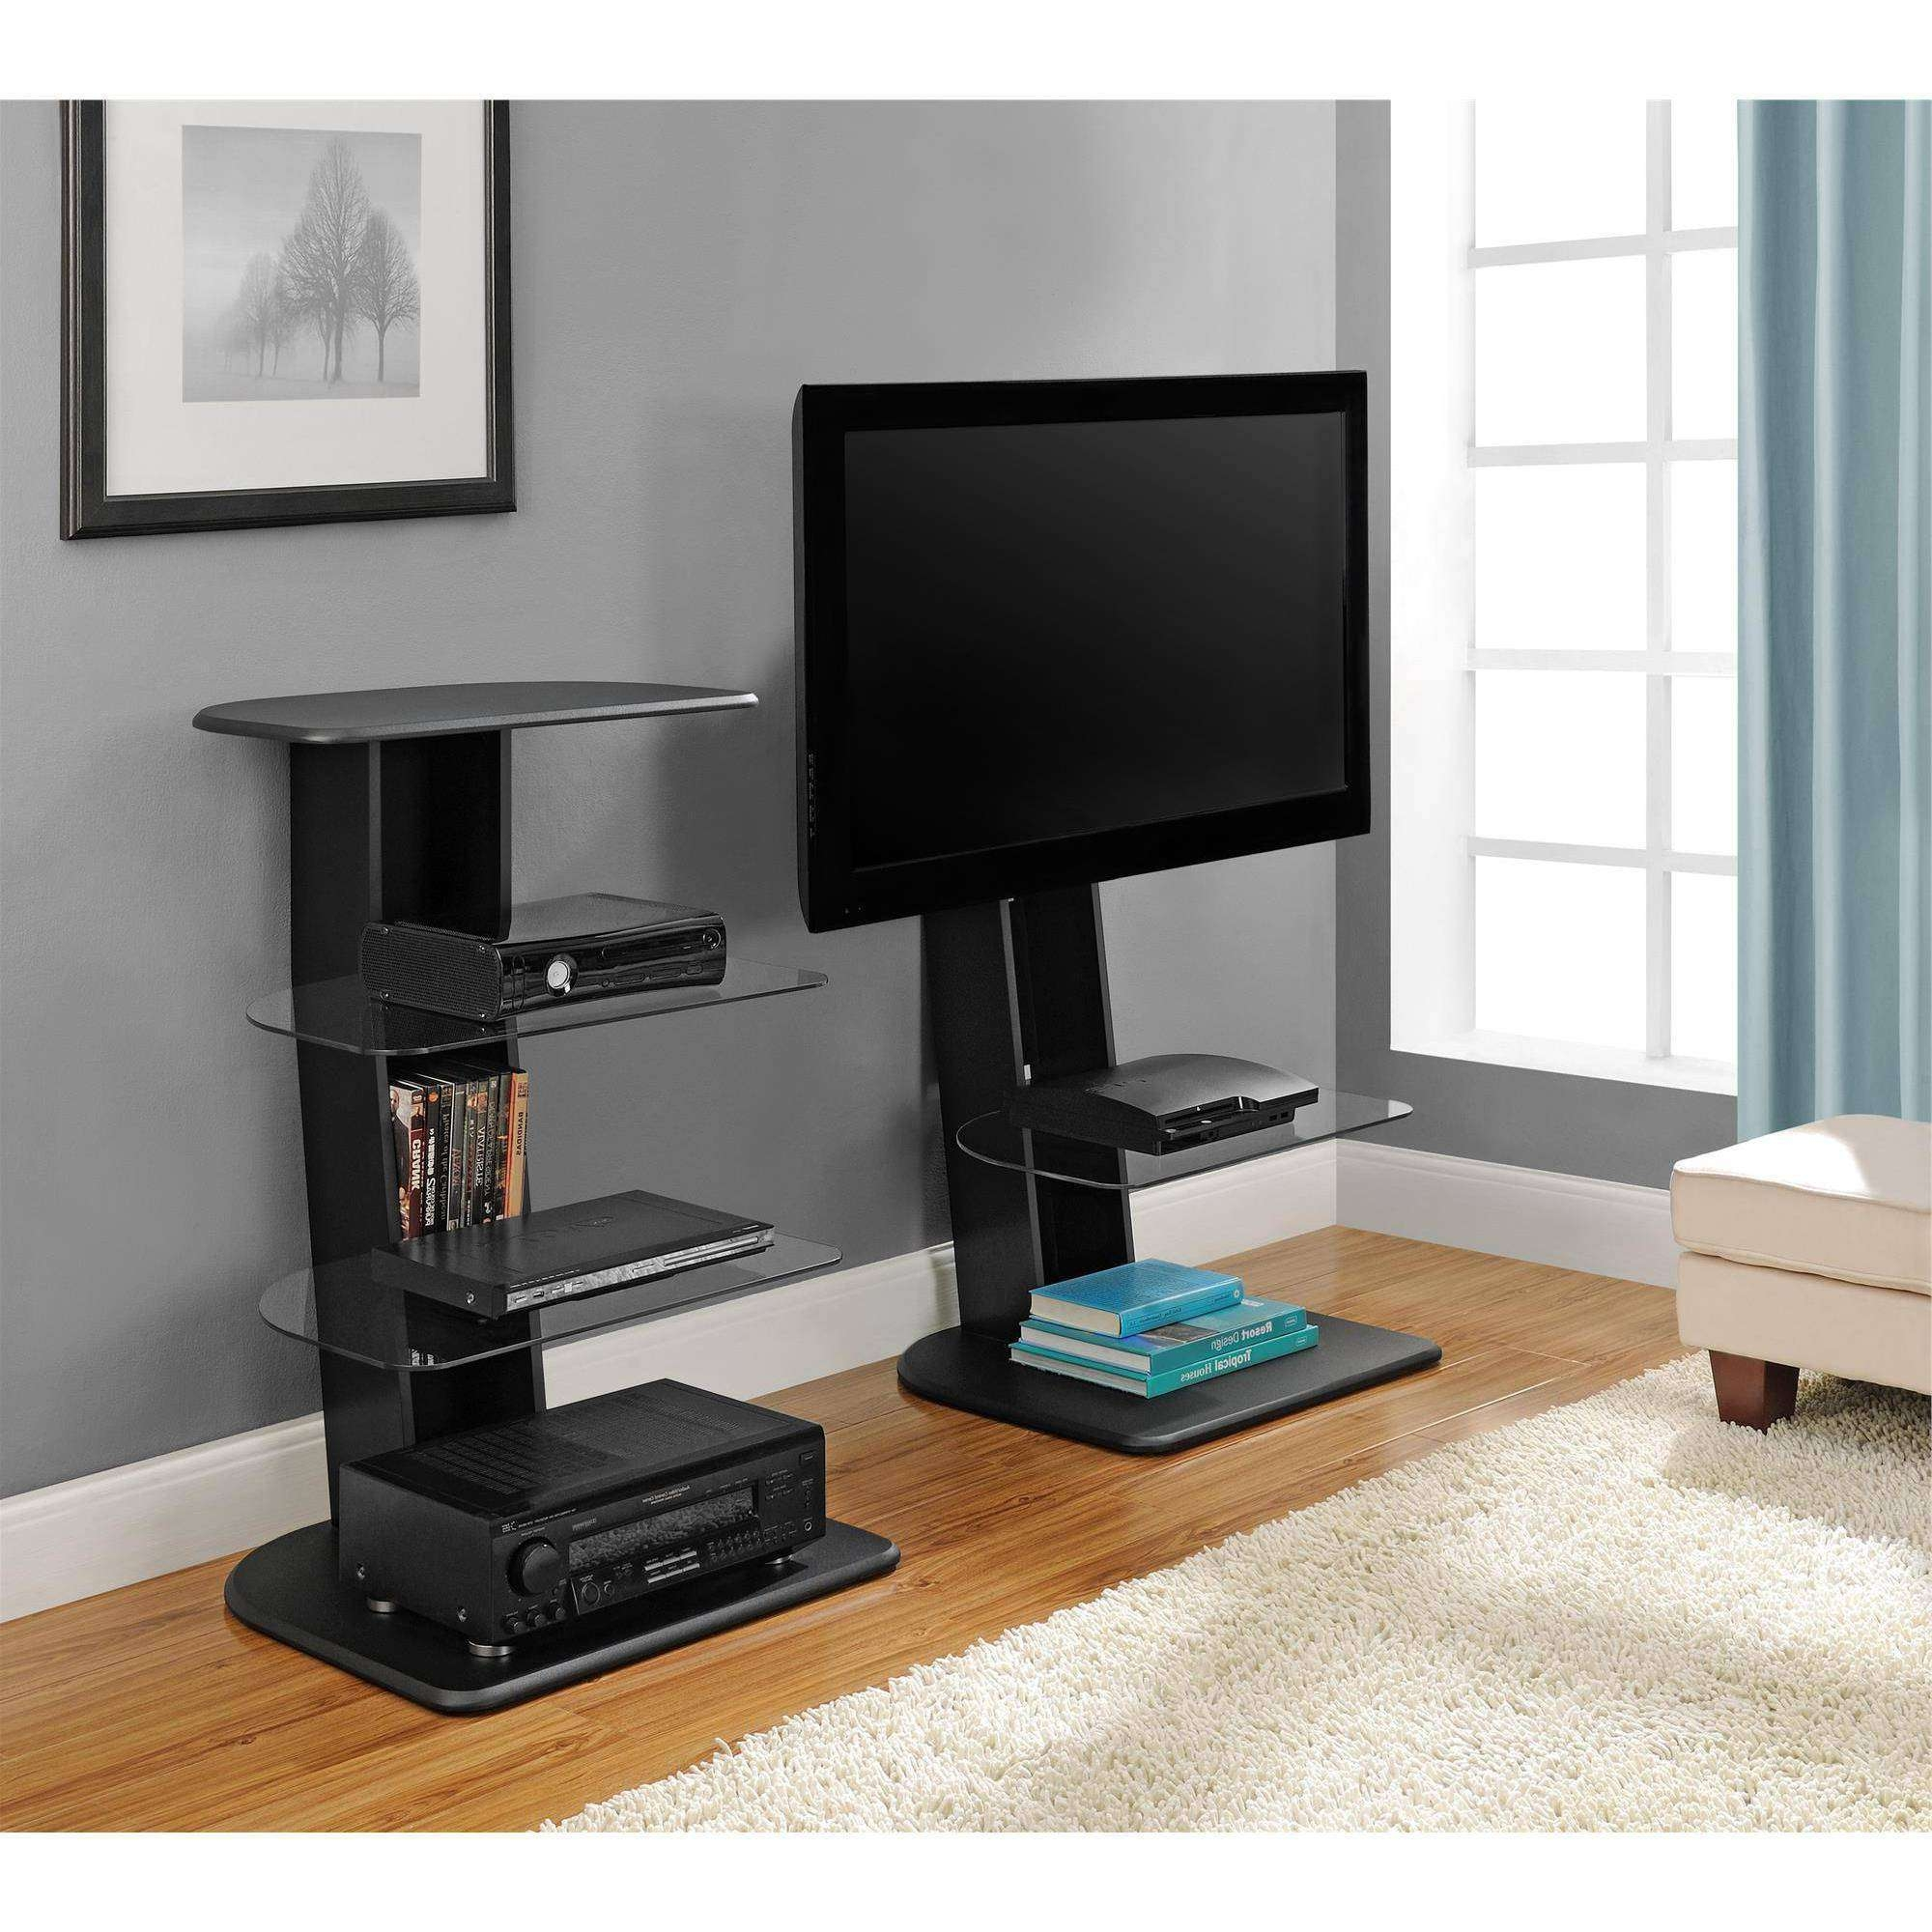 Winsome Wooden Brown Stands Tamonie Small Tv Stand Jennifer Pertaining To Skinny Tv Stands (View 6 of 15)